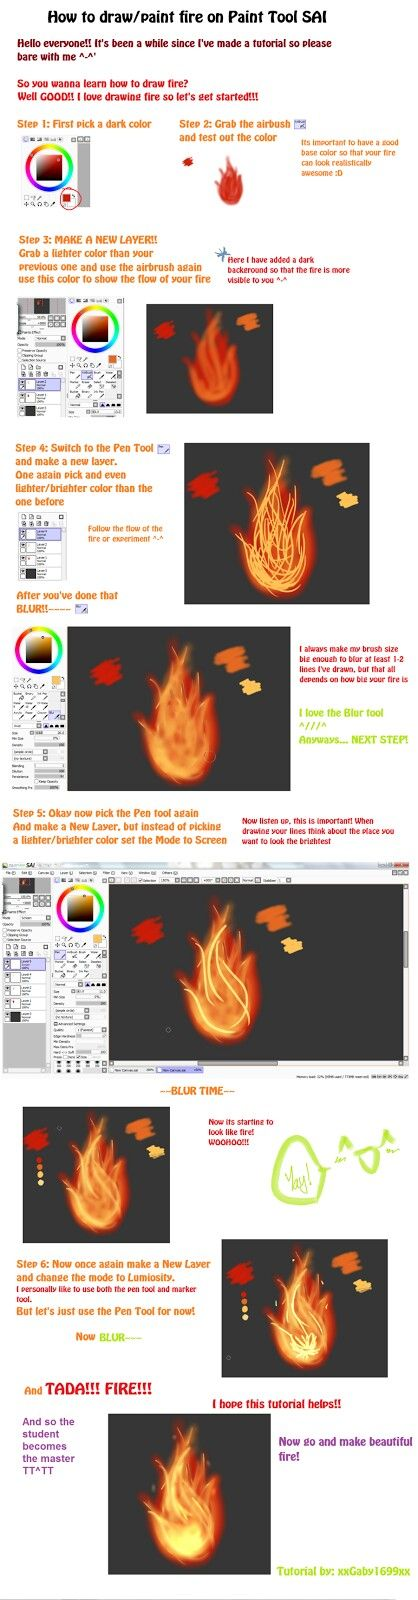 Digital Paint: how to draw fire